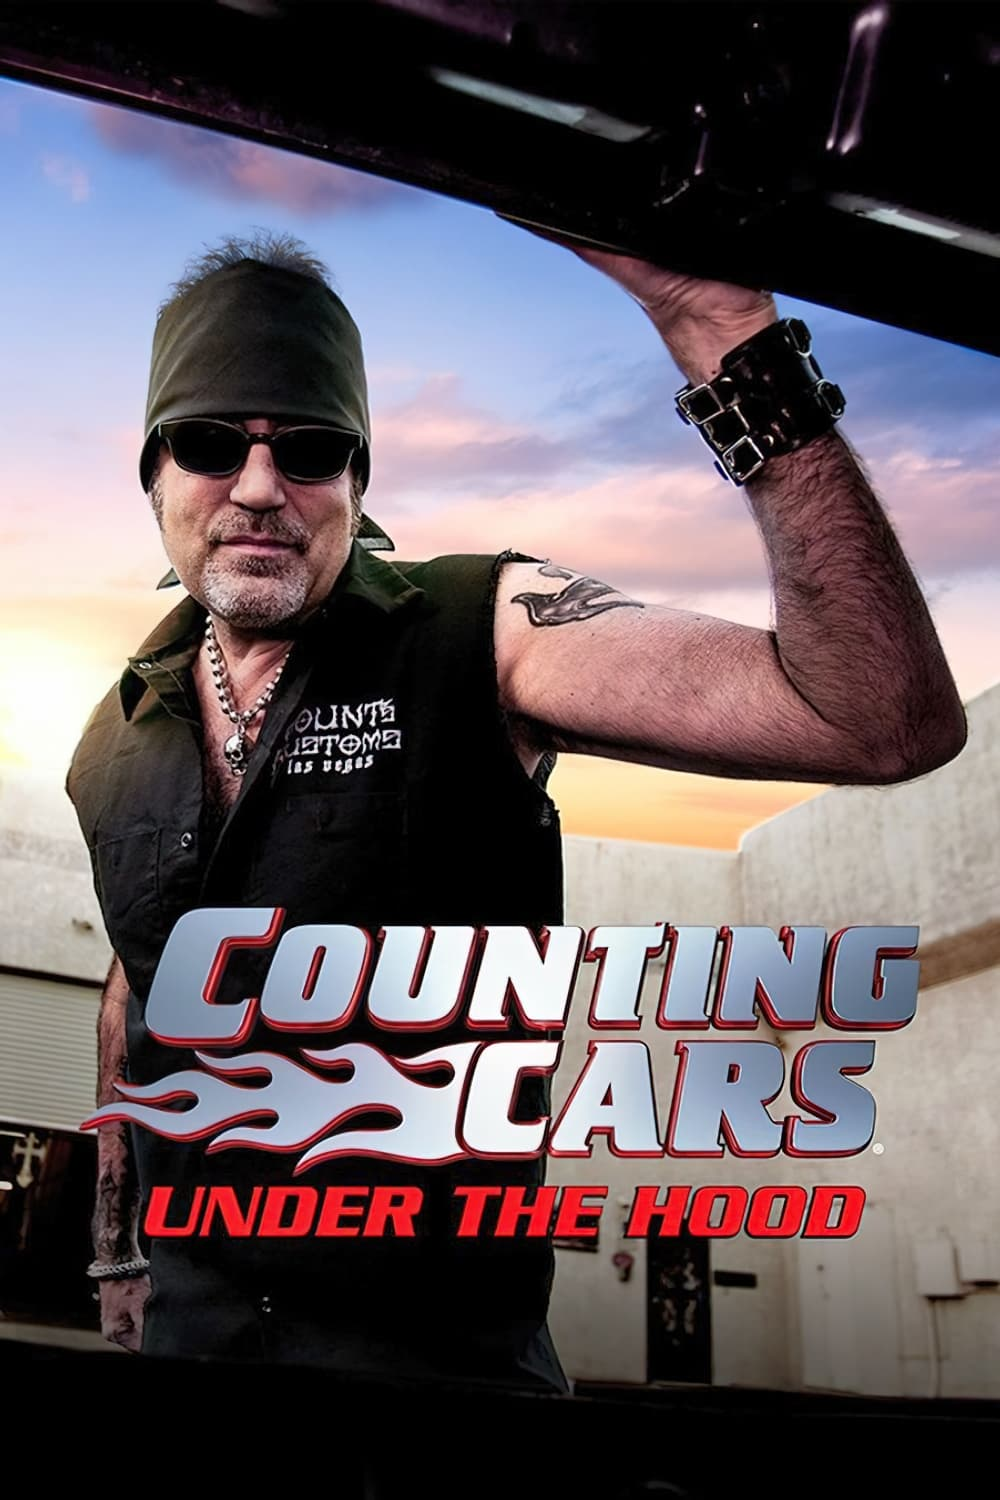 Counting Cars: Under the Hood (2021)